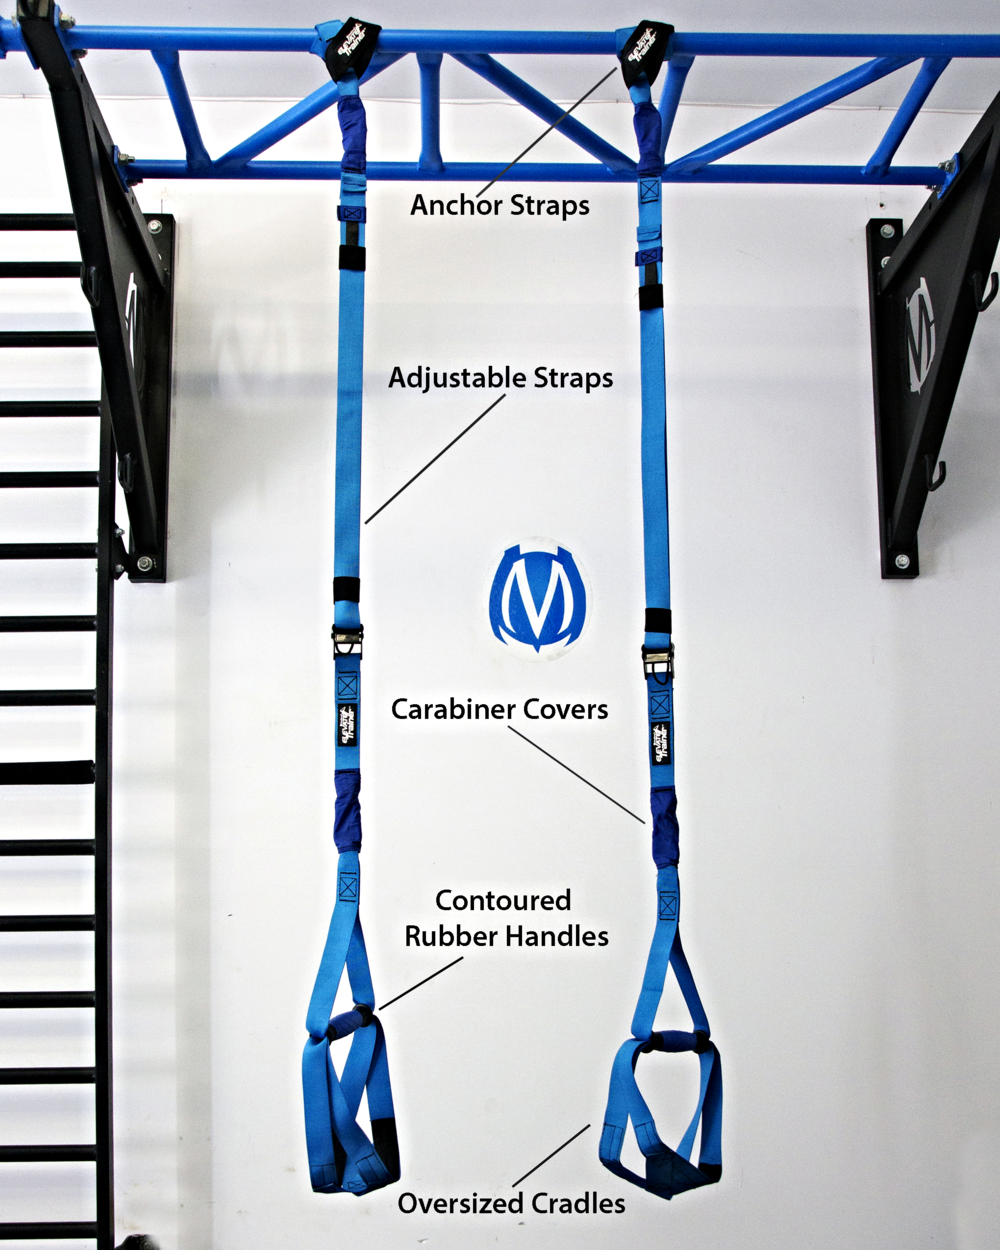 Elevate Trainer Parts Of A Contains Two Independent Anchor Straps For Attaching To Pull Up Bar Or